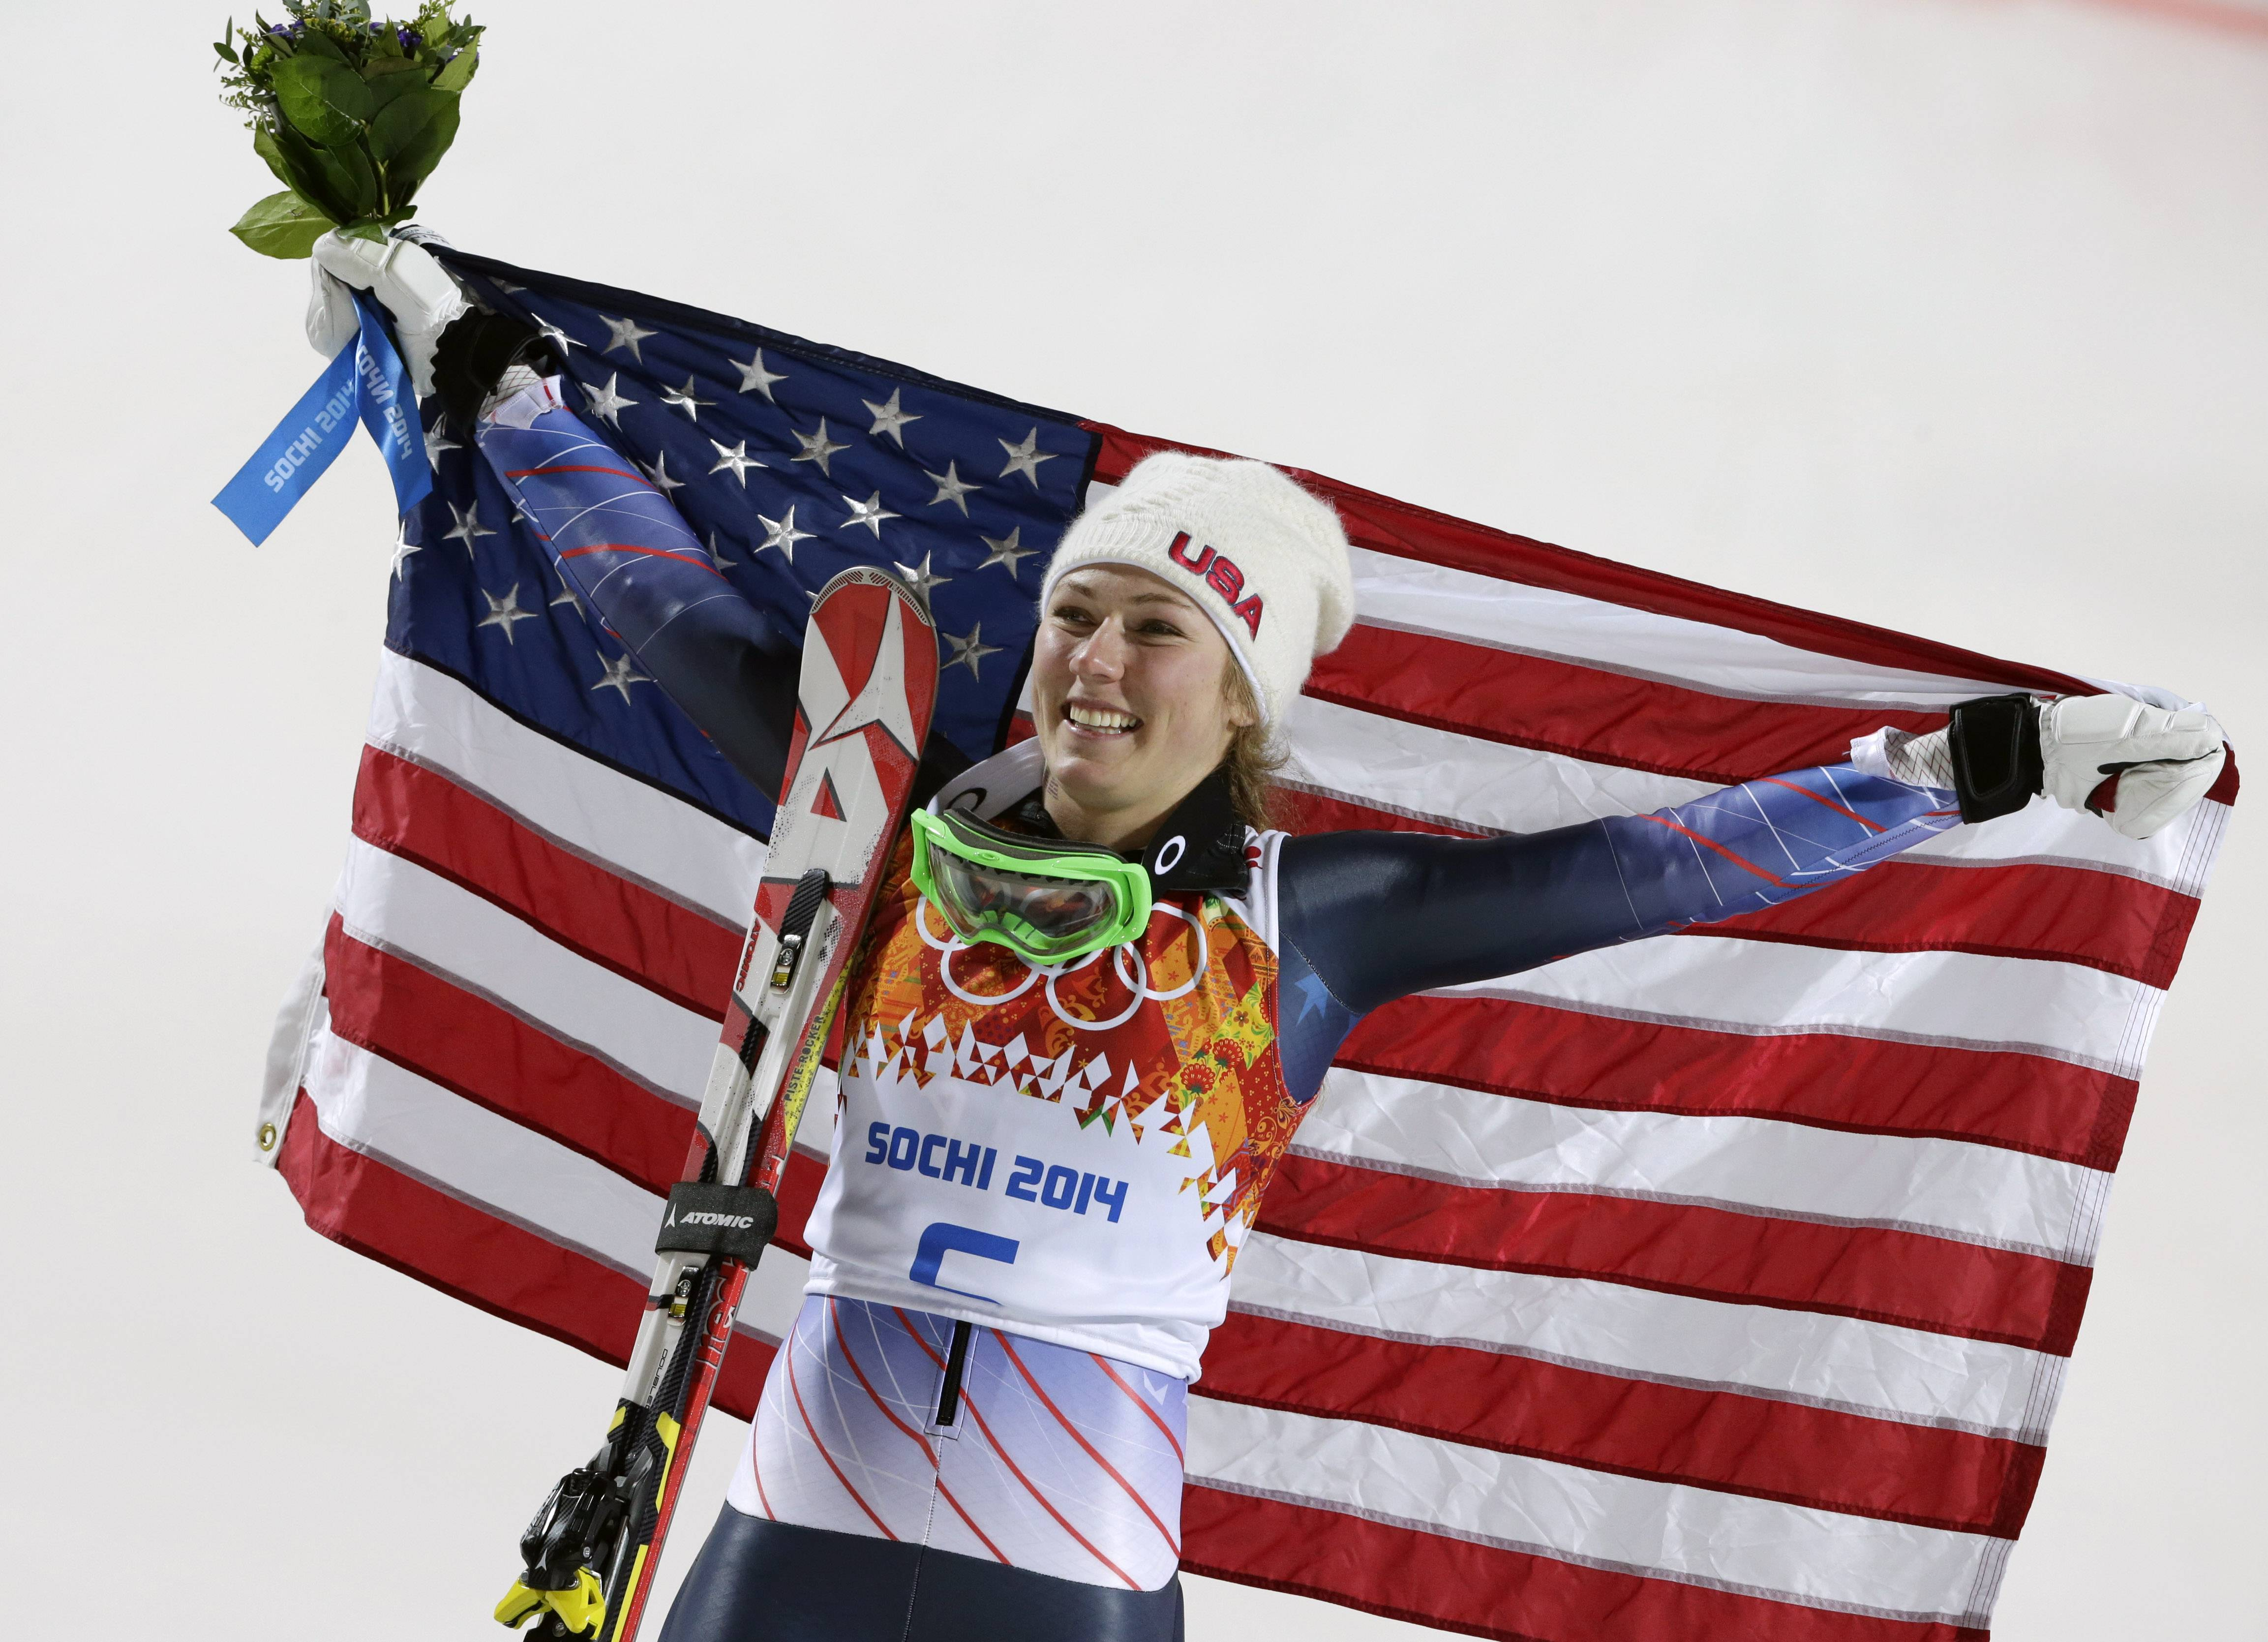 Women's slalom gold medal winner Mikaela Shiffrin of the United States poses for photographers with the U.S. flag.